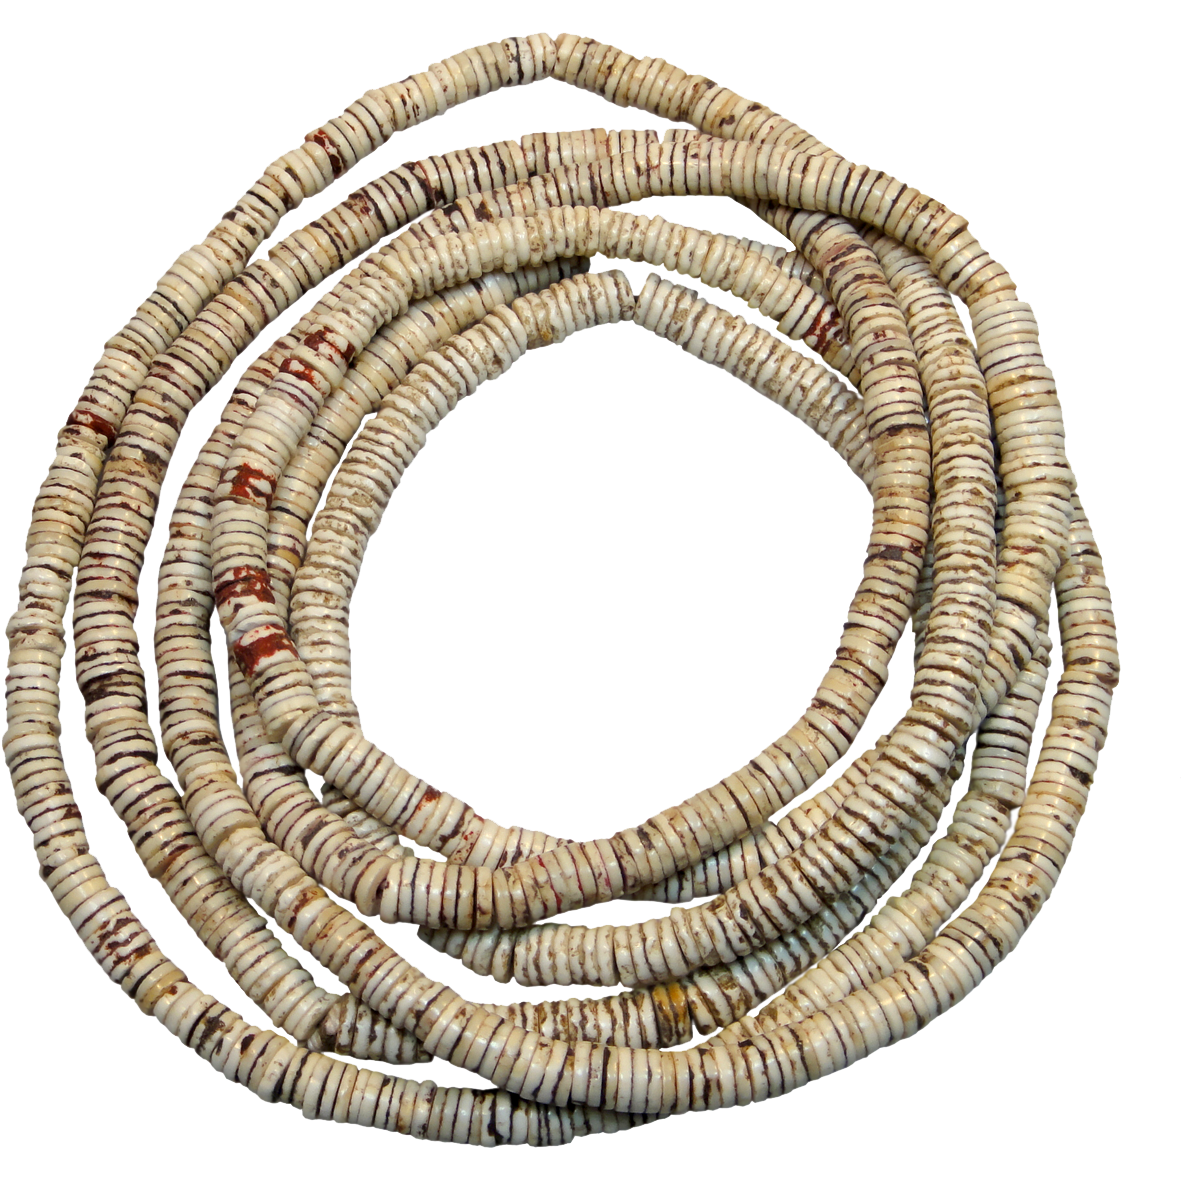 Namibia/Botswana, Ostrich Egg with Necklace from Ostrich Eggshell Beads (Bushman's Beads) (reverse)